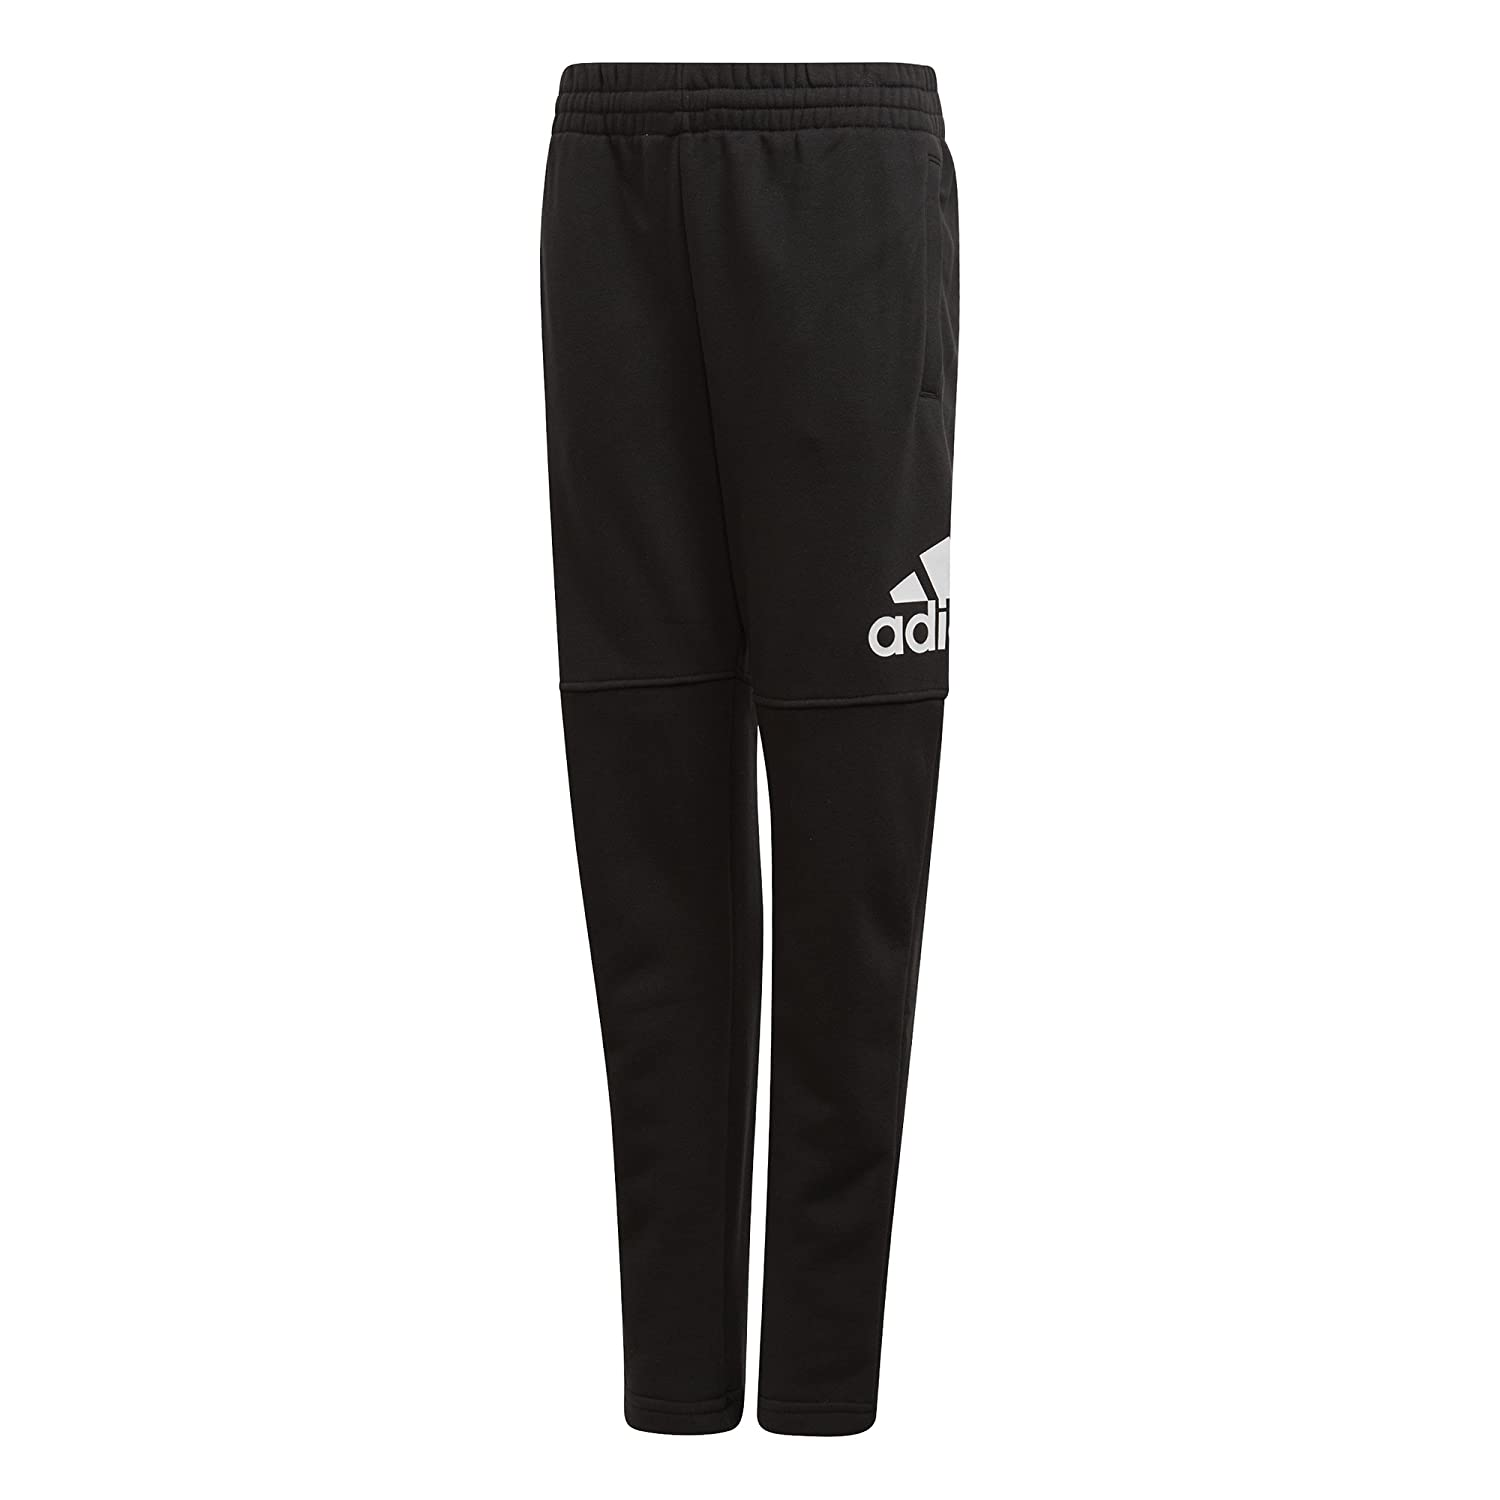 Adidas Boy's Essentials Logo Pants